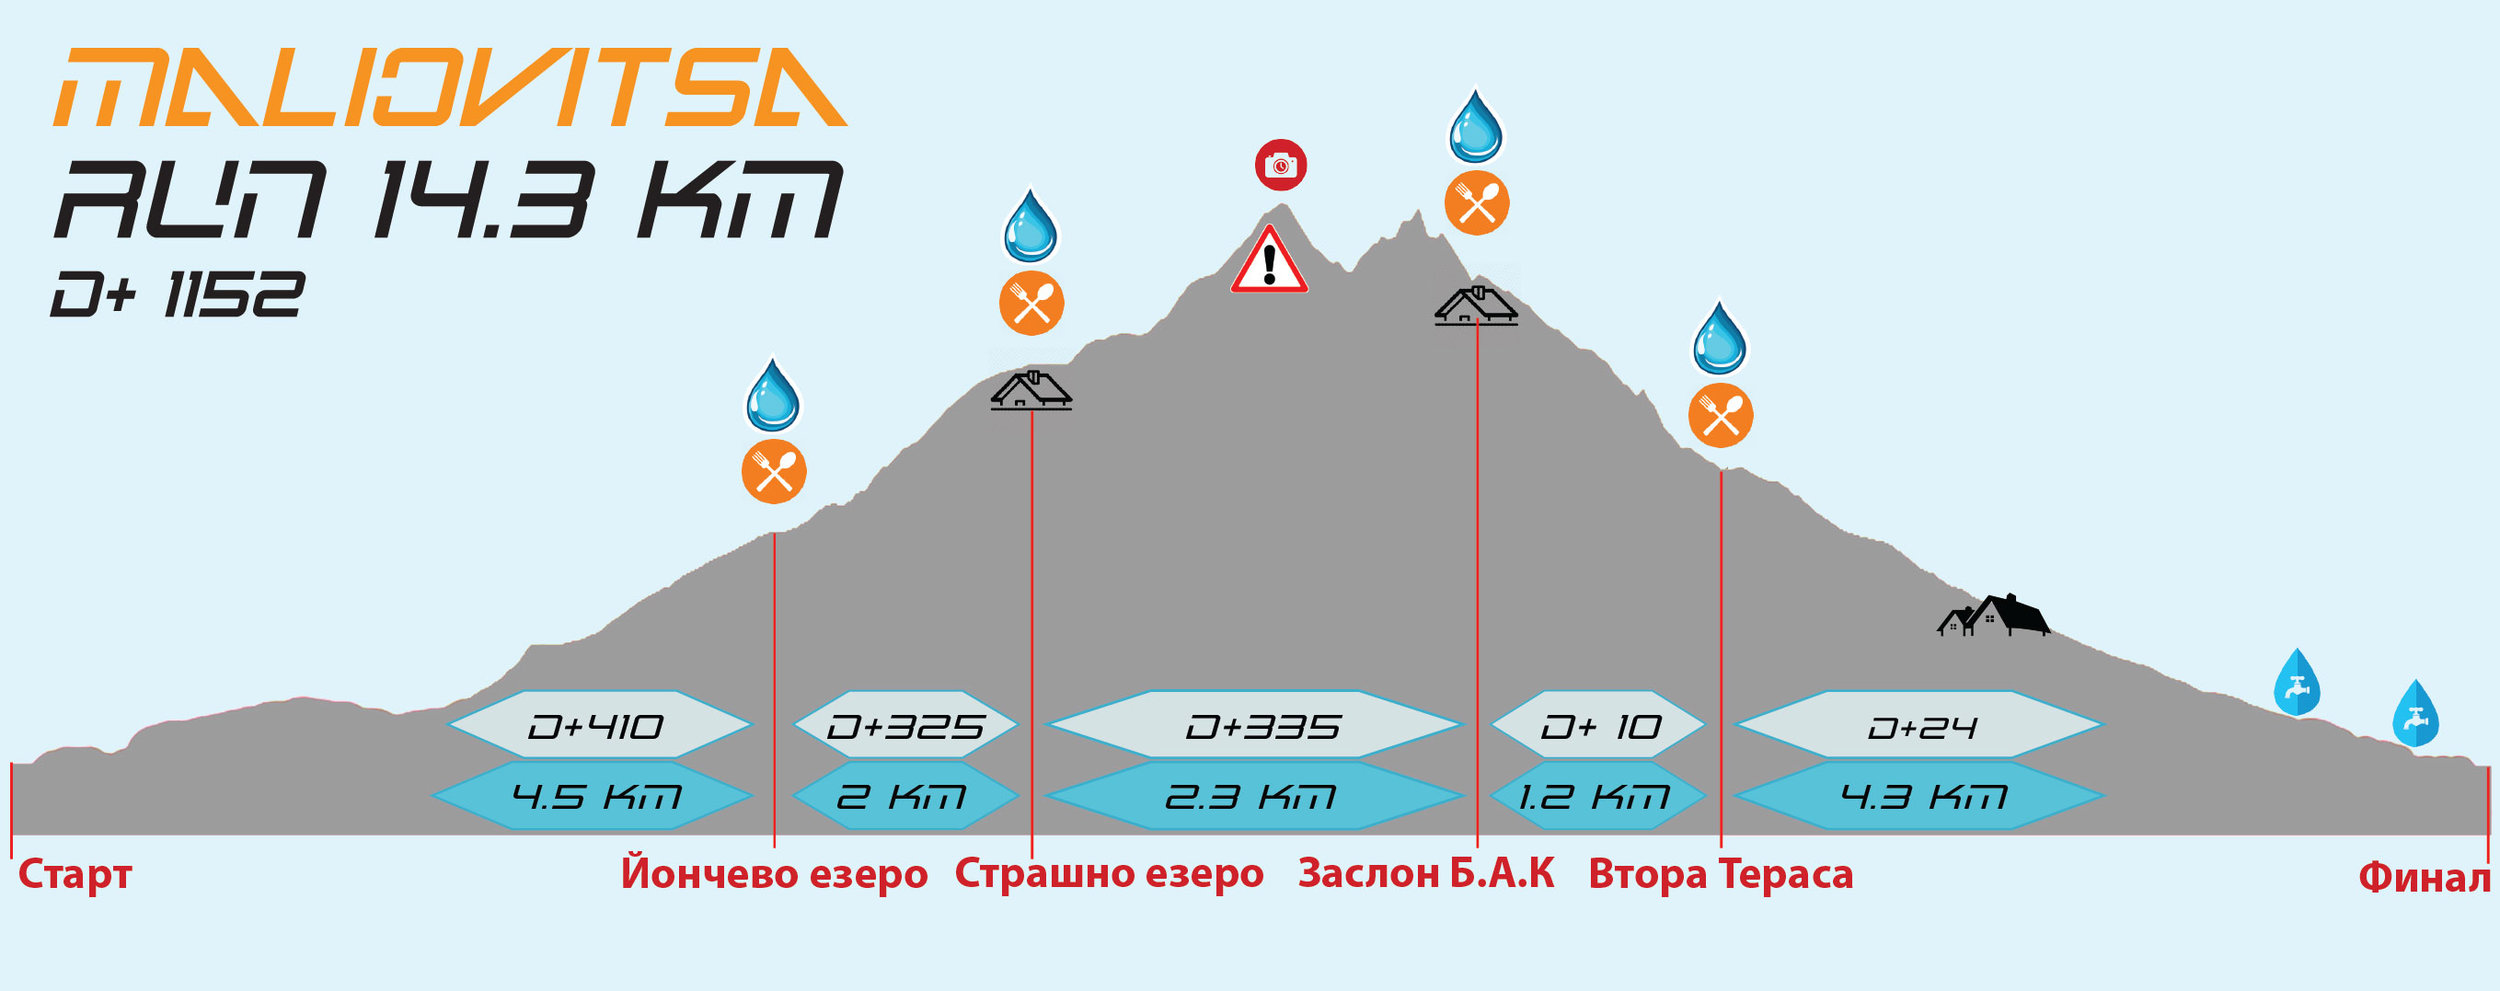 Malyovitsa Sky Run Profile 14km